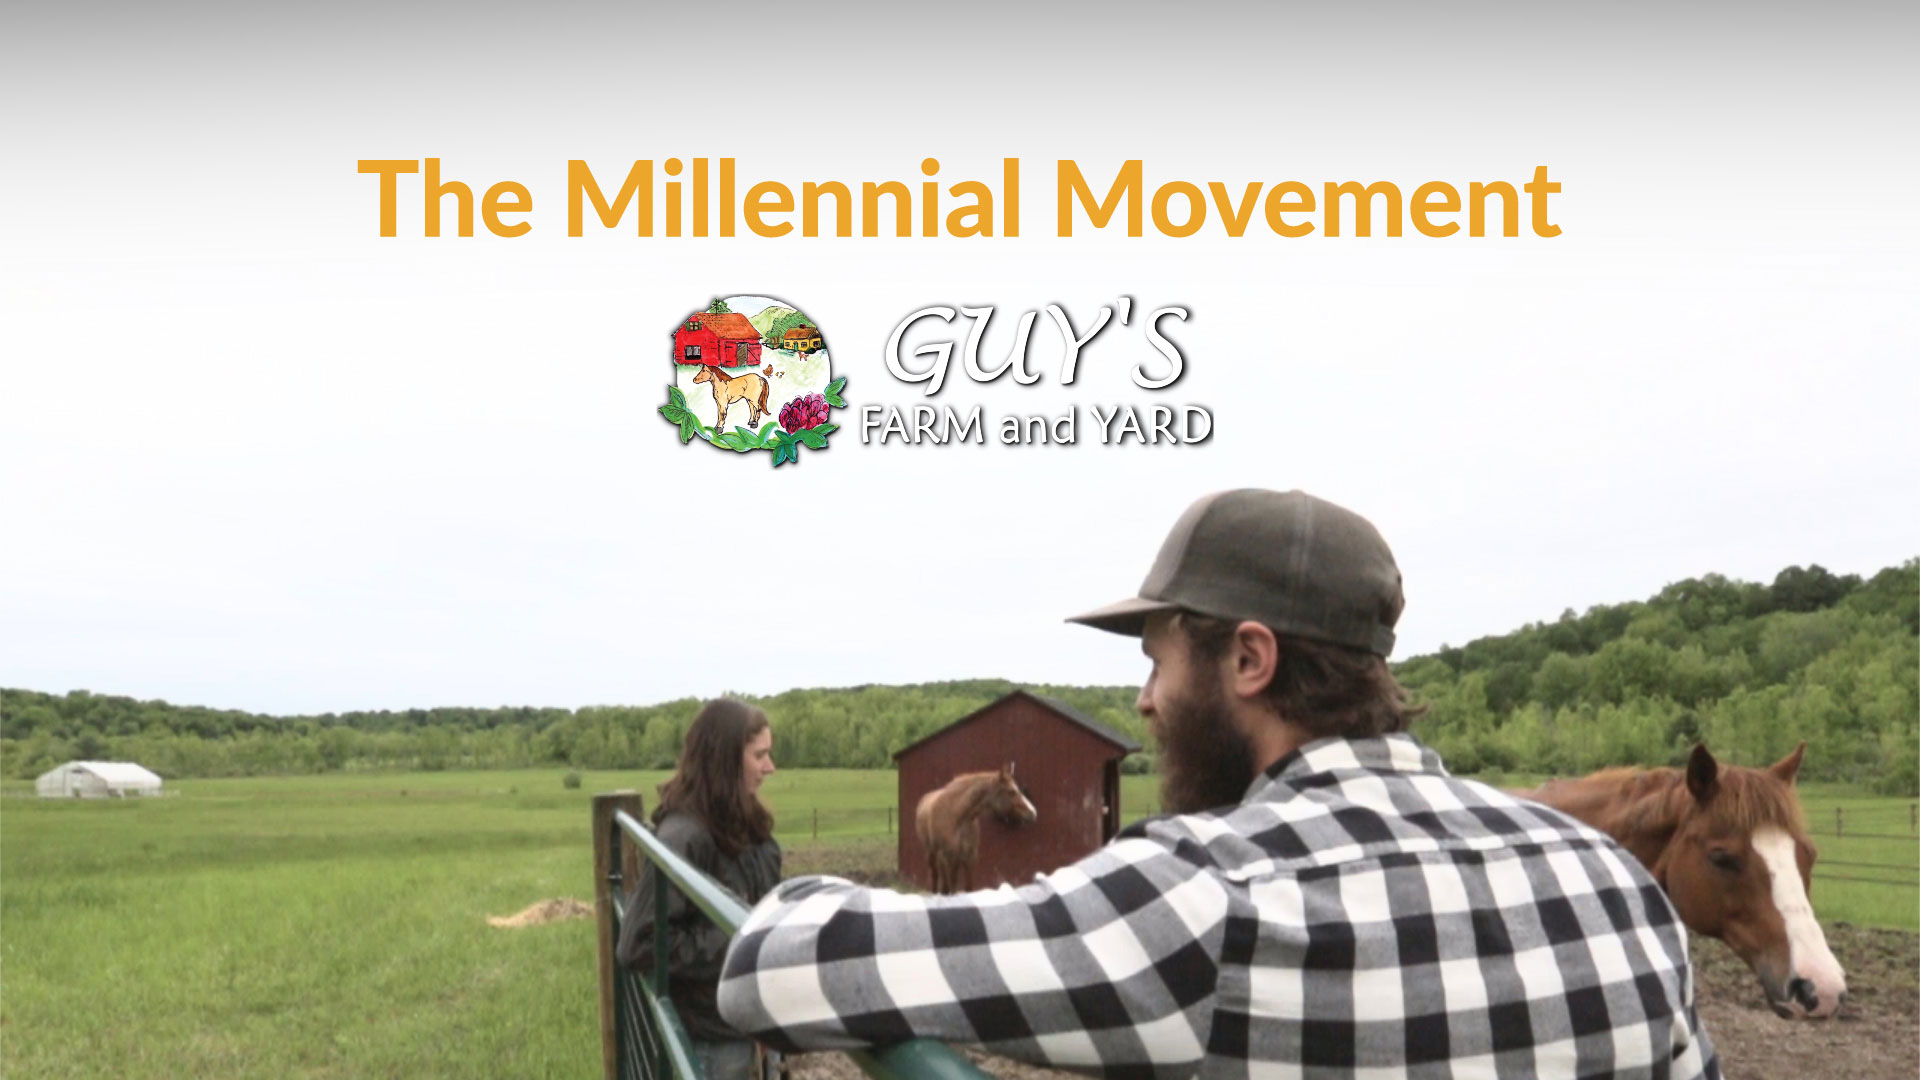 Guys Farm and Yard - Millenial Movement